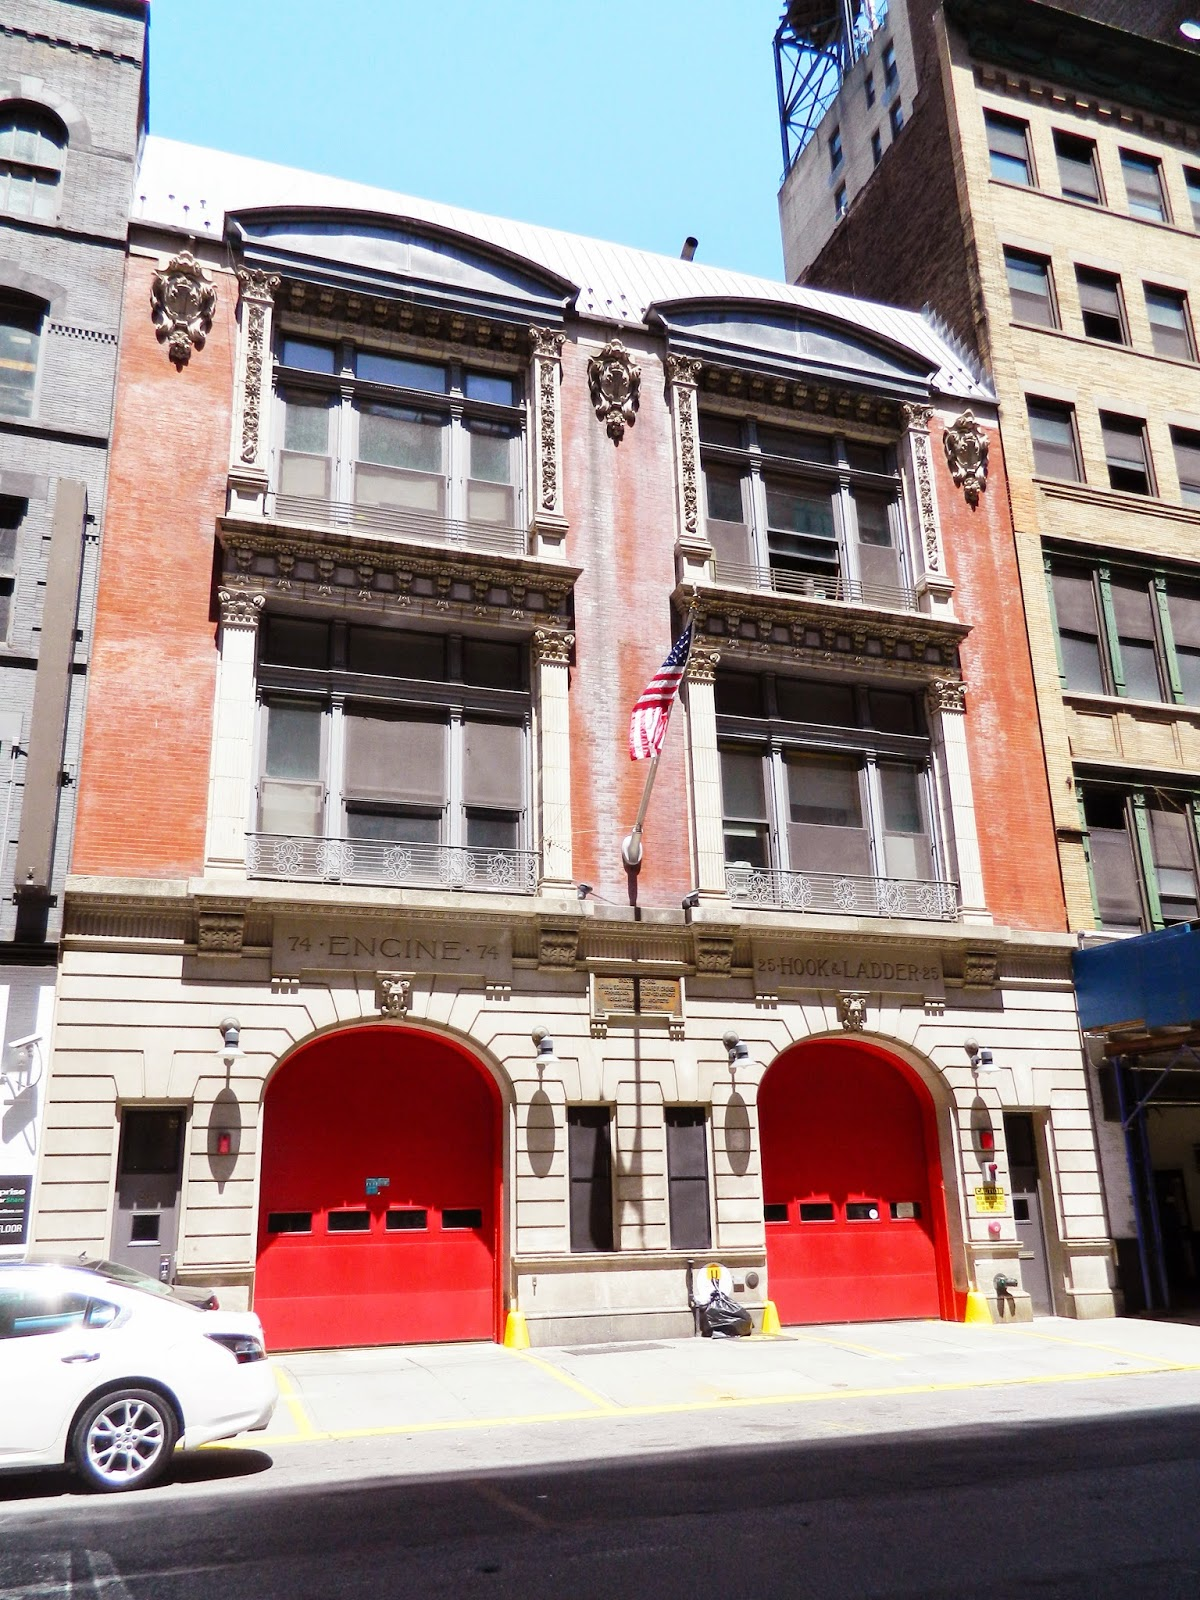 new york city fire station building architecture